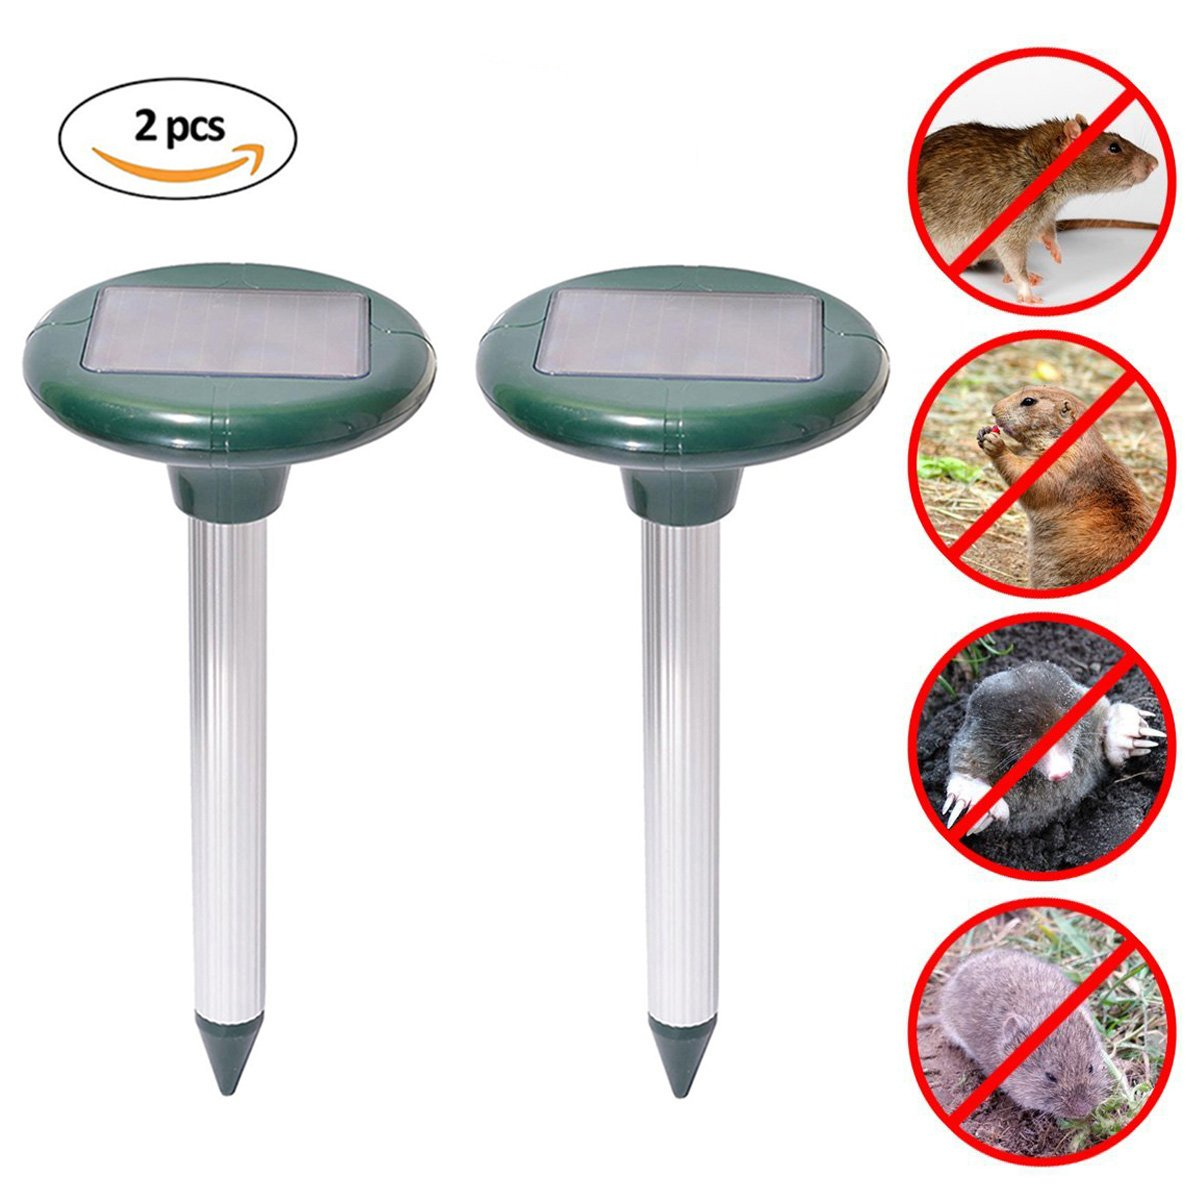 Wonninek Mole Repeller Ultrasonic Solar Snake Gopher Repeller Mice Rats Rodent for Lawn Garden Yards 2 Pcs